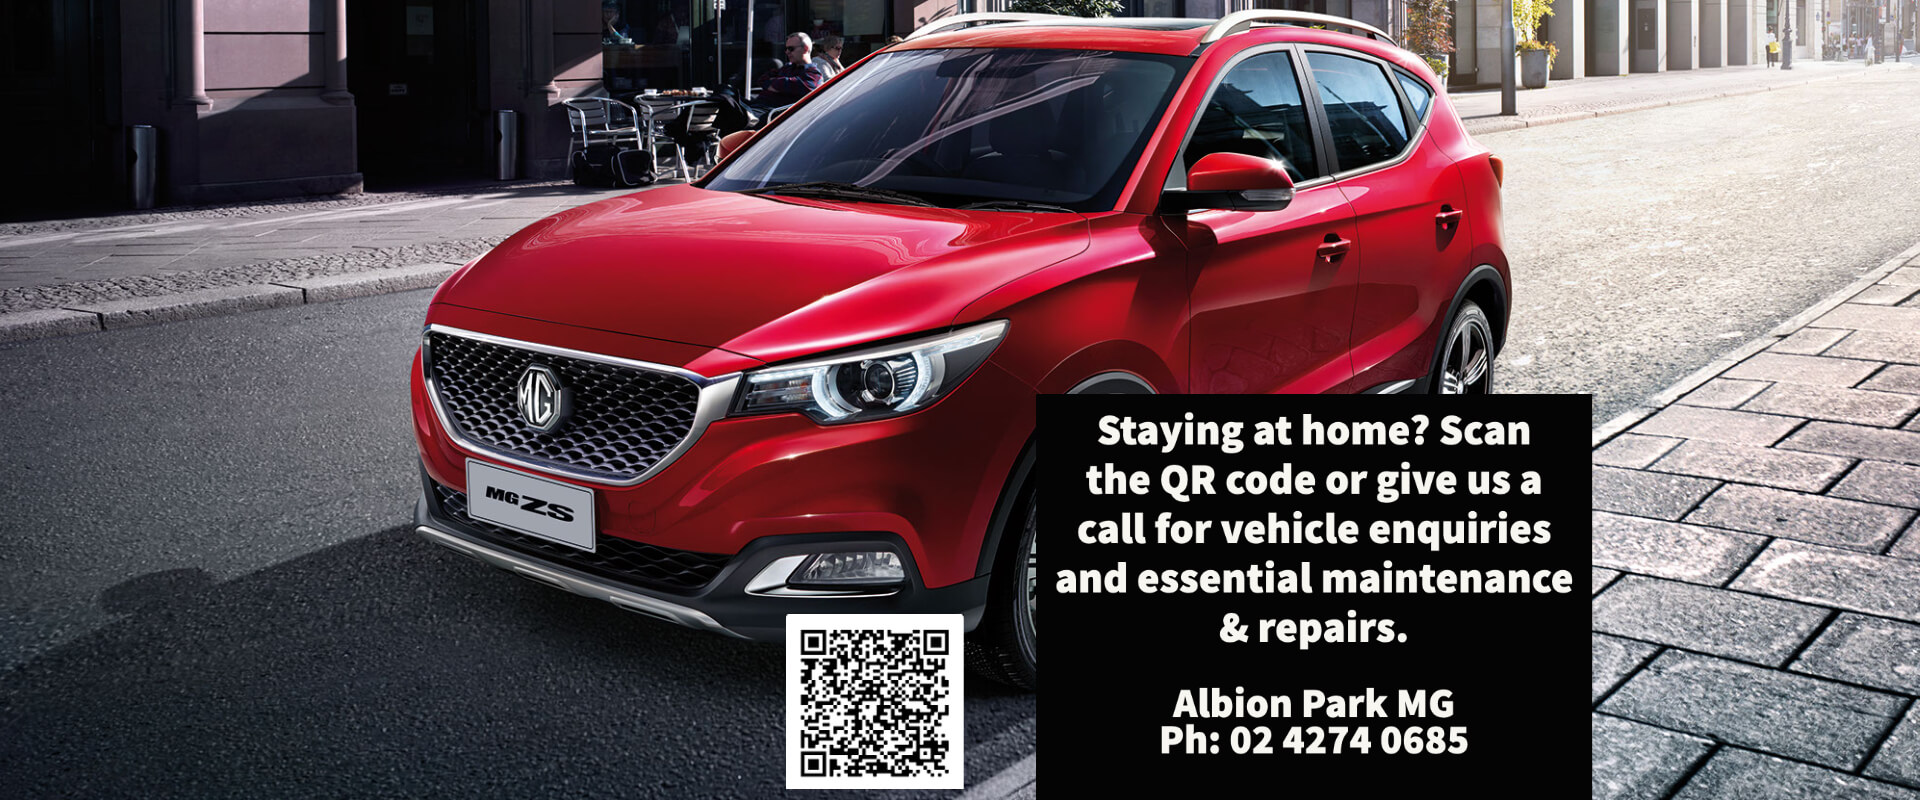 Staying at home? Give us a call or scan the QR code for vehicle enquiries and essential maintenance and repairs.